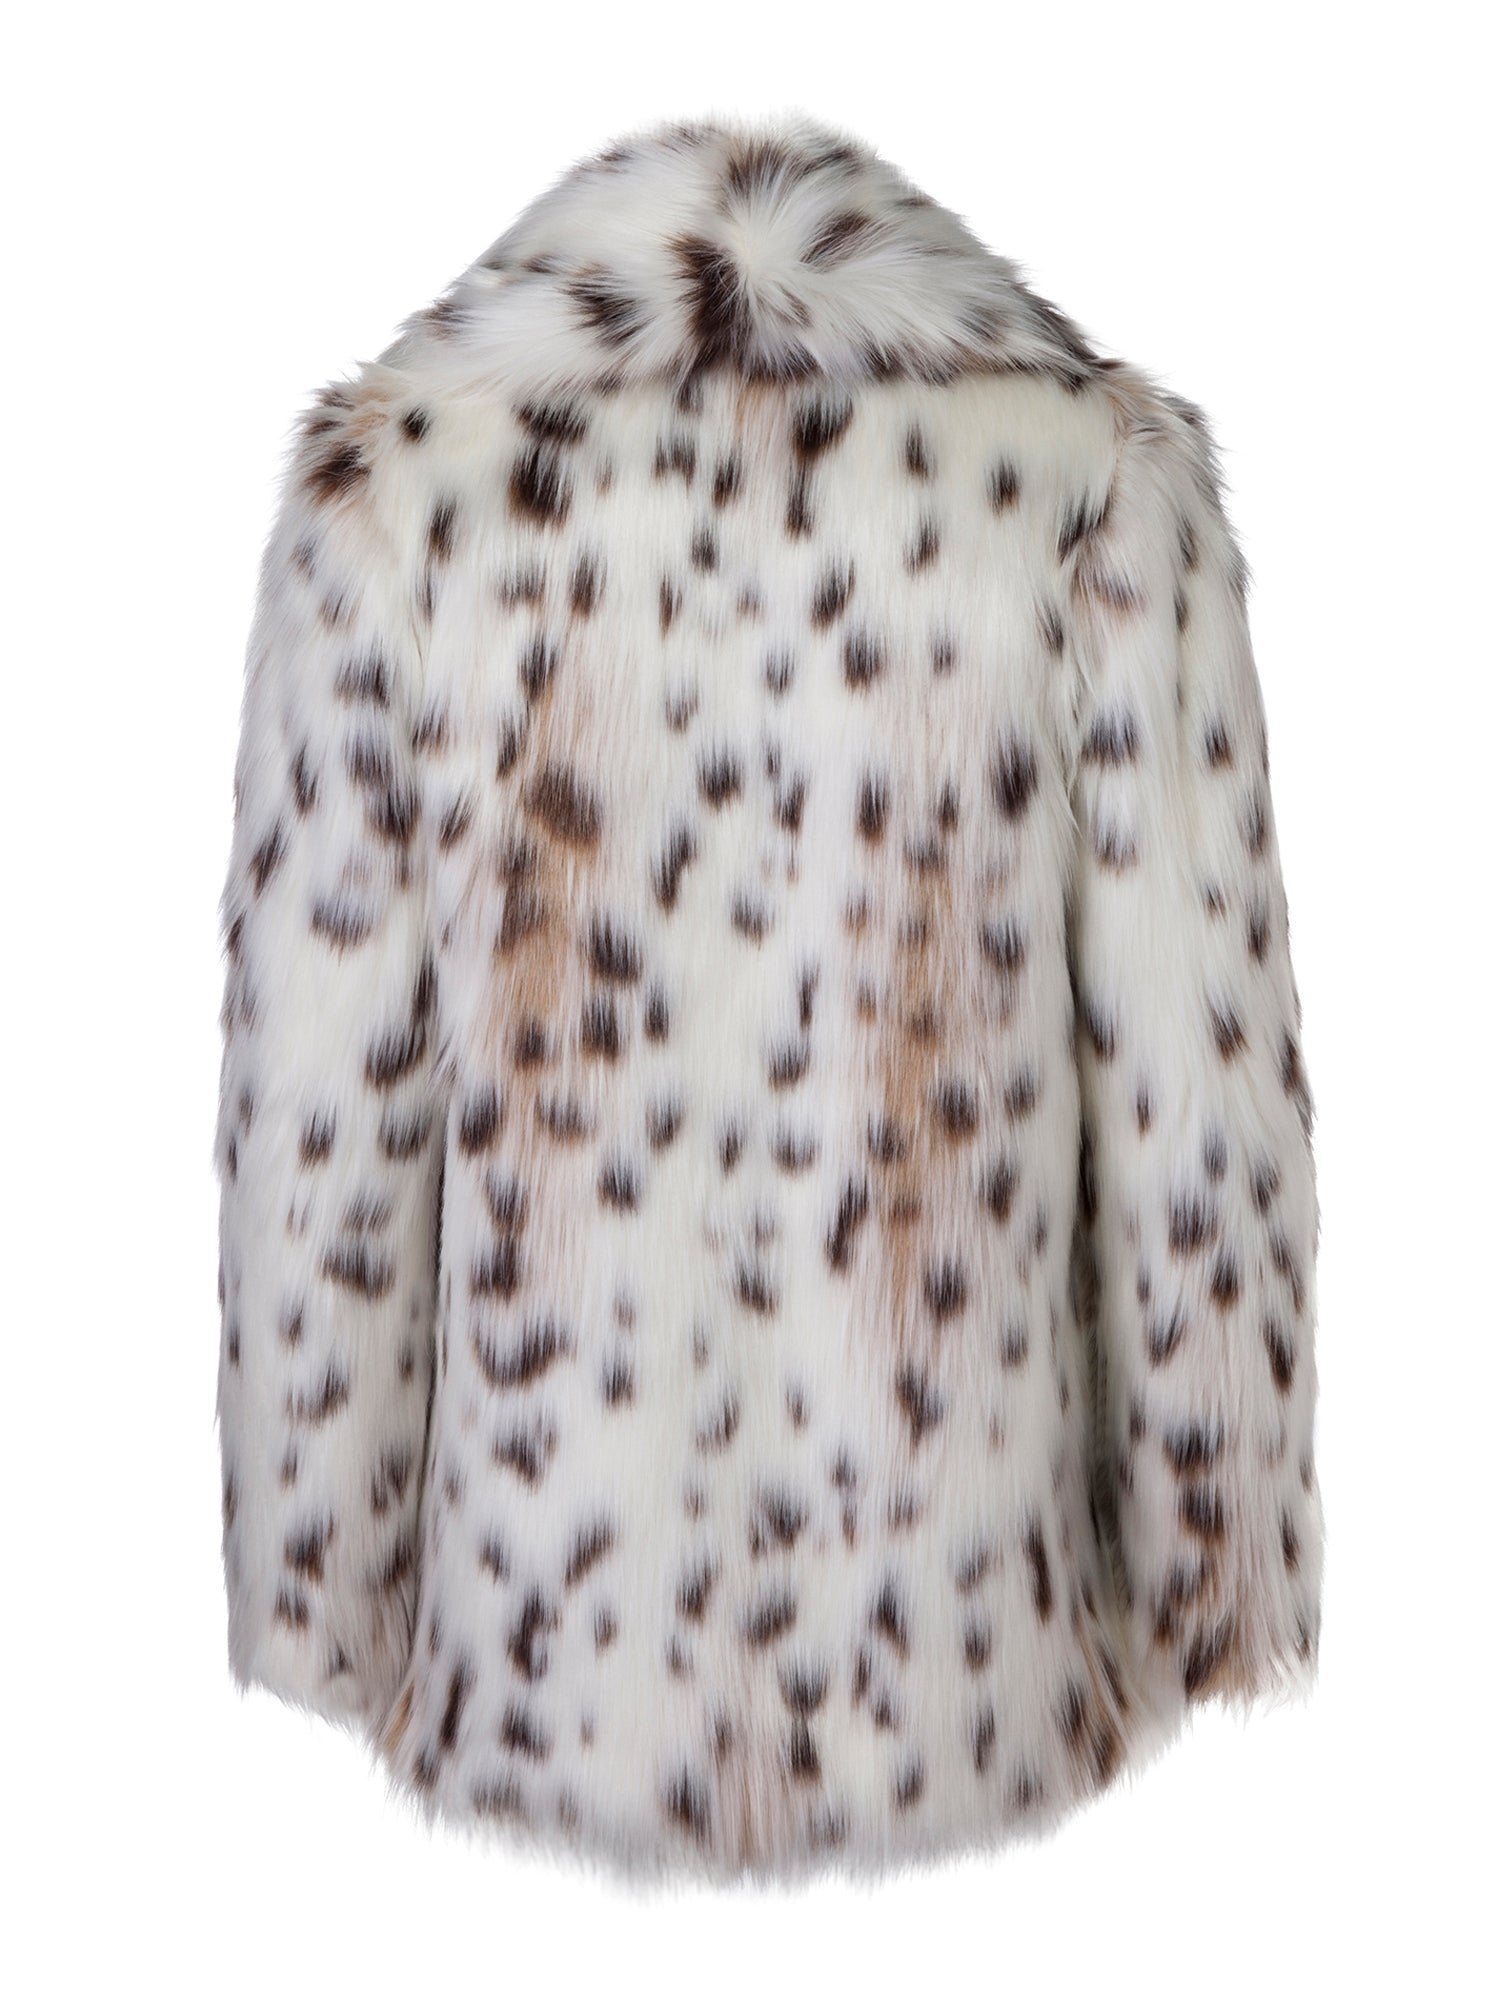 A Packshot Of Marei1998's Tiger Lily Faux Fur Coat In Linca Color. Featuring Spotted Design, Oversized Silhouette And Shawl Collar. Wardrobe Staple. Back View. Resort 2020 Collection - Furless Friendship.